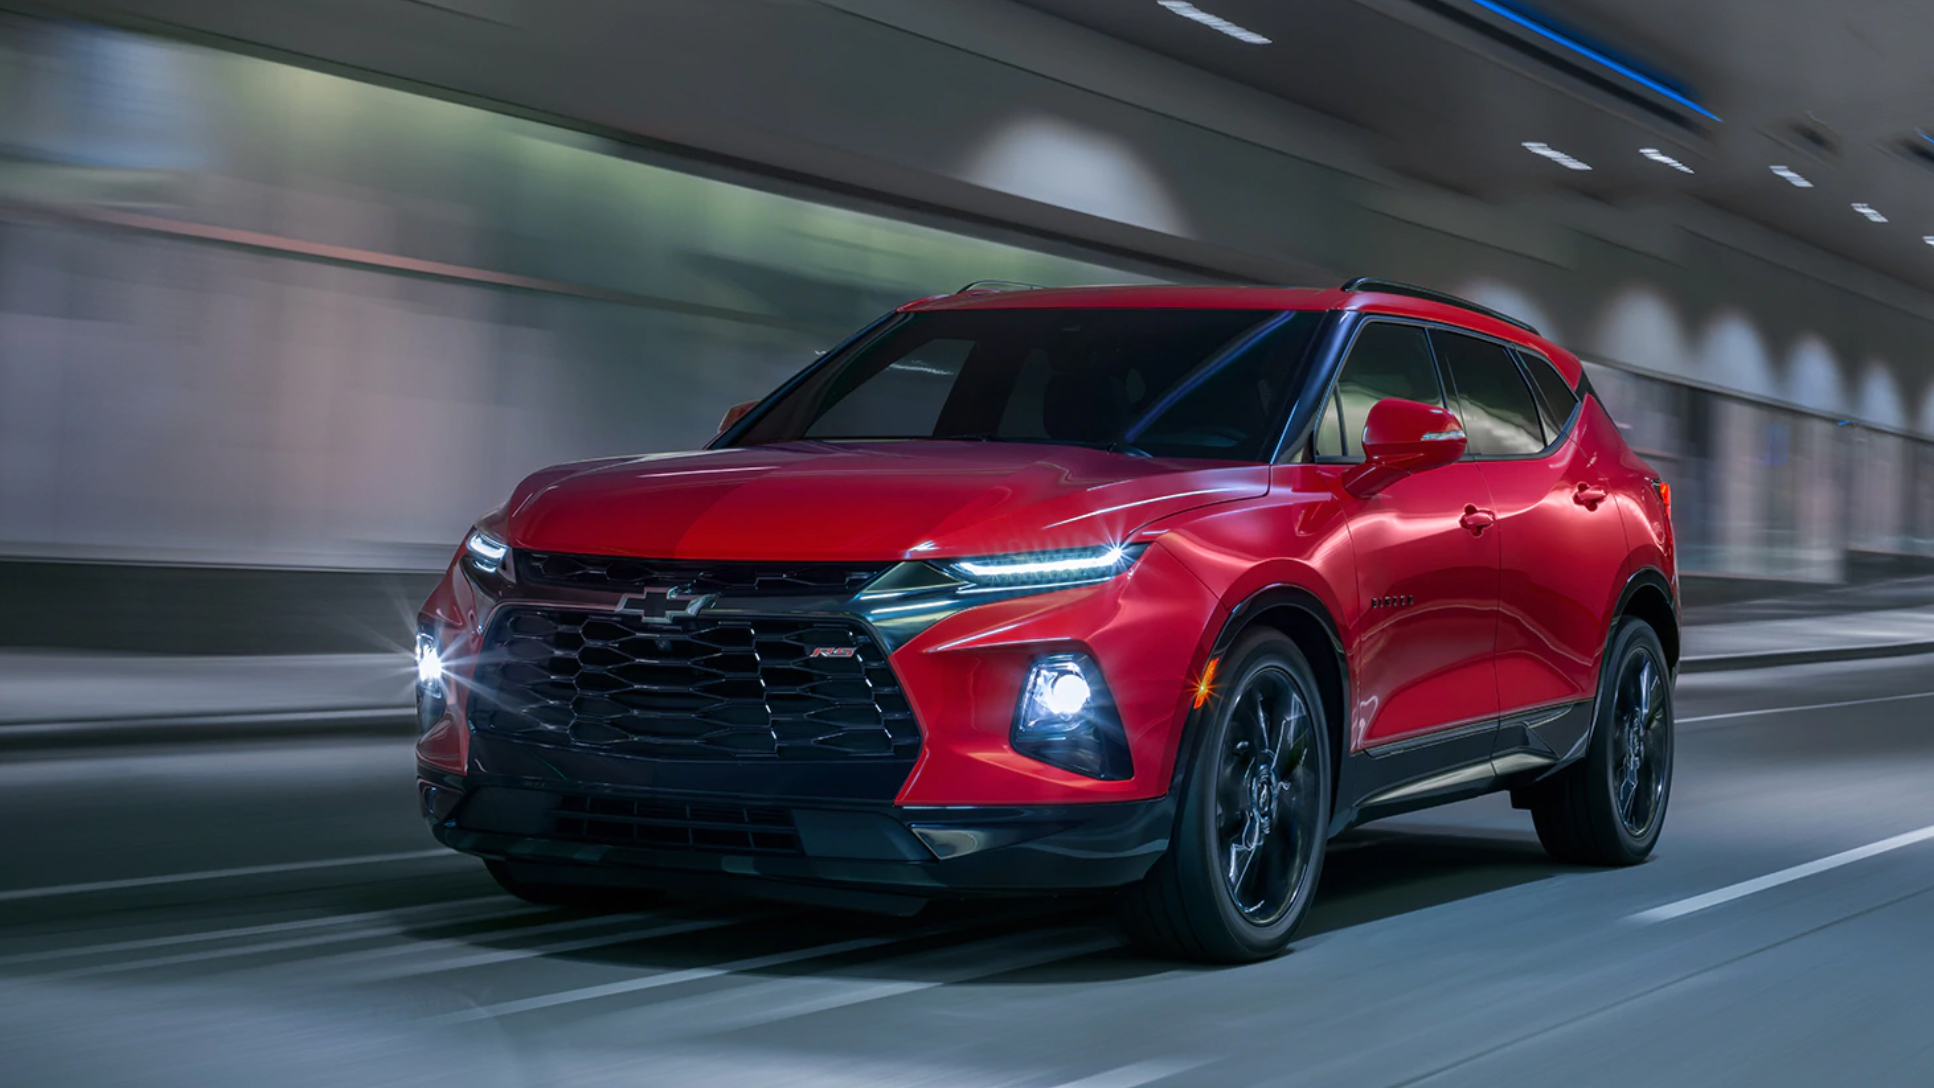 2019 Chevrolet Blazer SUV convenience and confidence package * Must have Non-GM lease in the household